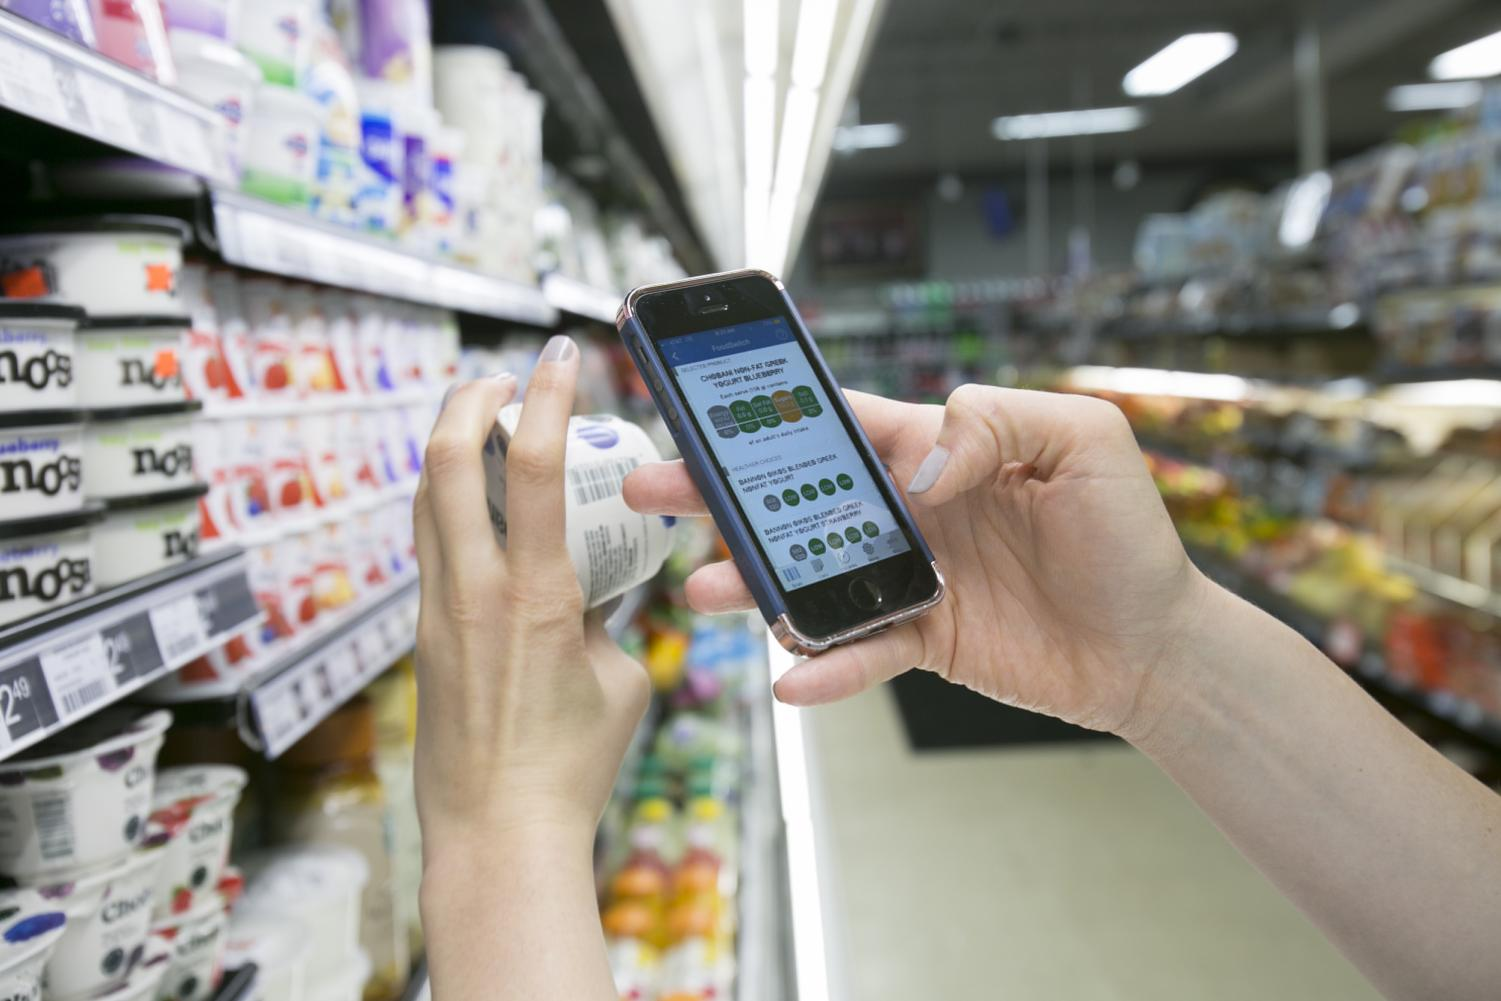 After users take a picture of a food nutrition label, FoodSwitch's Traffic Light Labelling Mode allows consumers to compare the food's contents to daily recommended amounts of calories, fat, sodium and other ingredients.